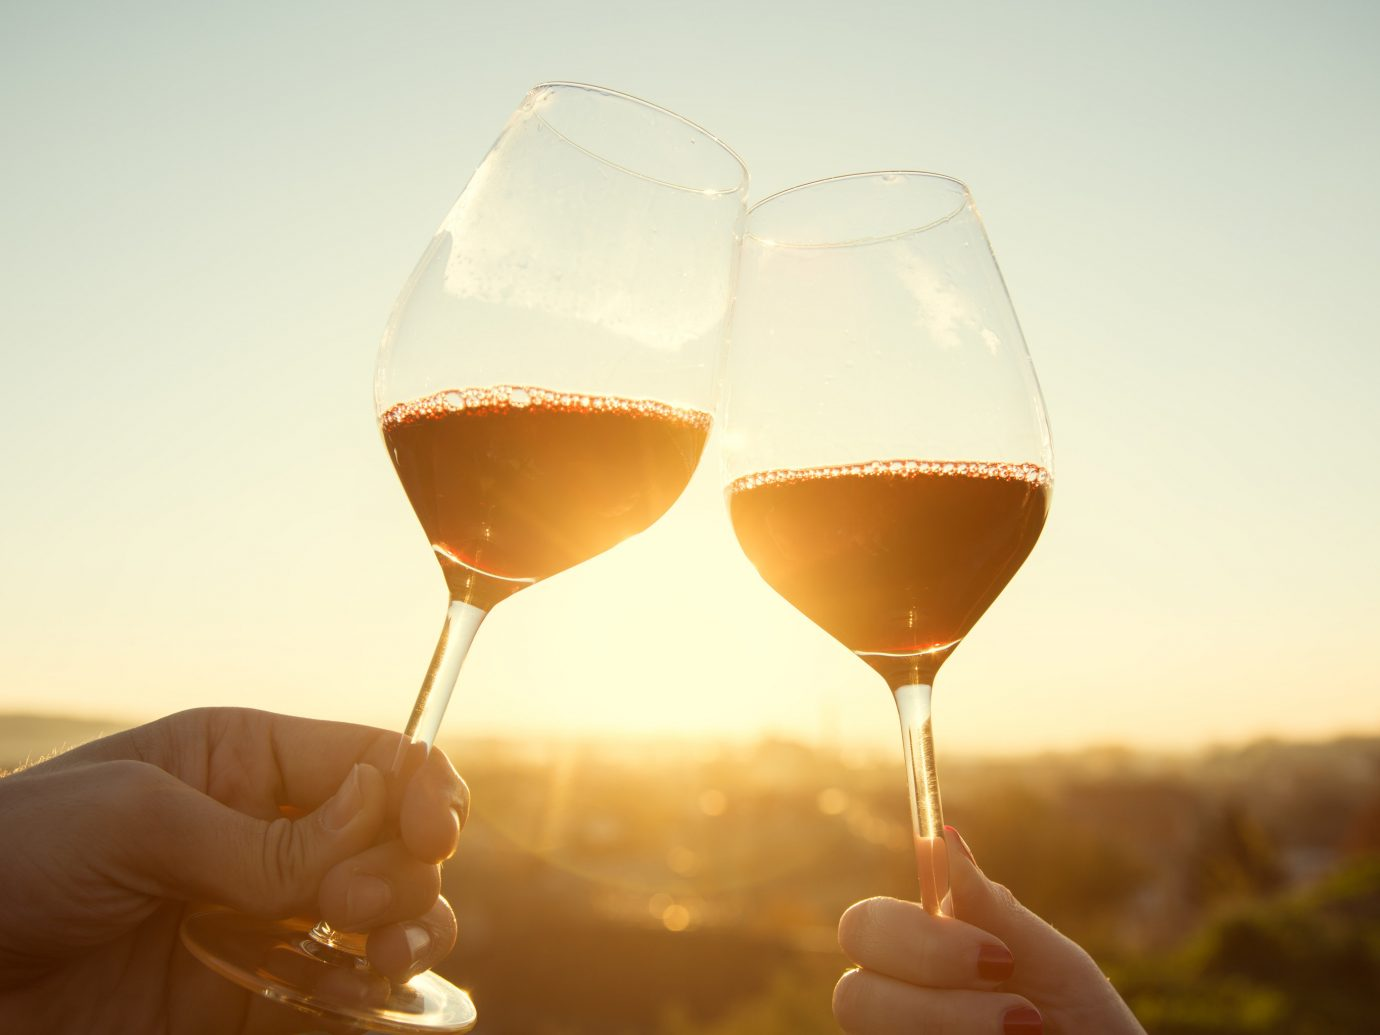 Food + Drink Girls Getaways Travel Tips Trip Ideas Weekend Getaways wine sky person alcoholic beverage Drink wine glass stemware glass alcohol red wine close up morning reflection distilled beverage liqueur sense food container drinkware champagne white wine beverage